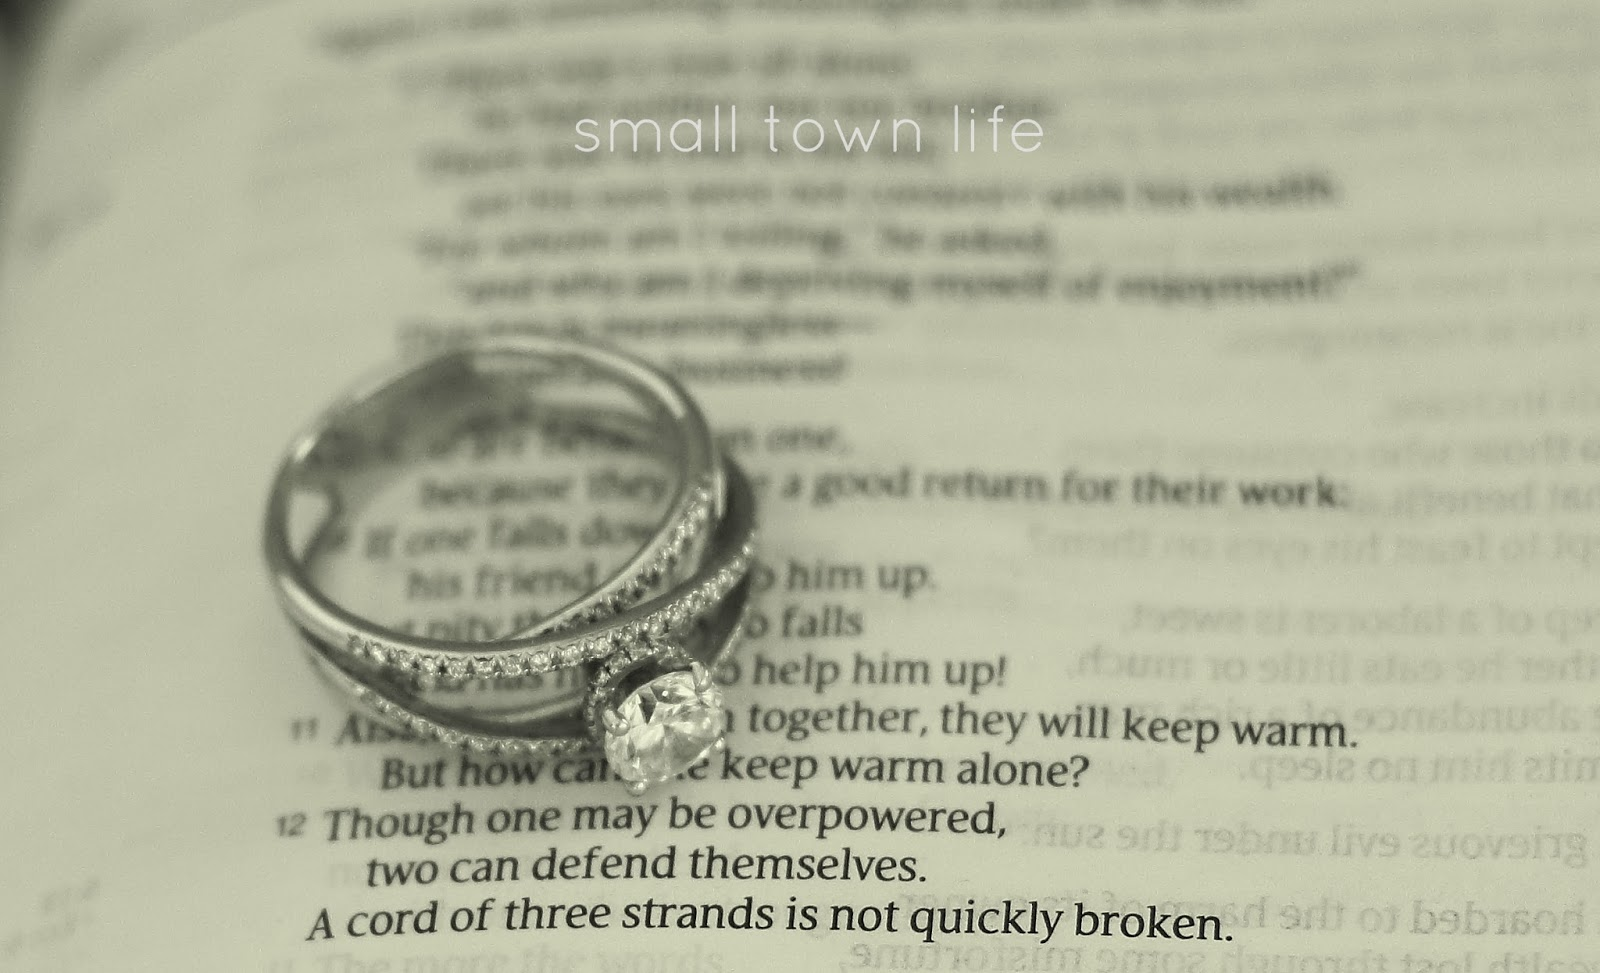 ecclesiastes 4:12, engagement ring, engagement photo, engagement bible verse